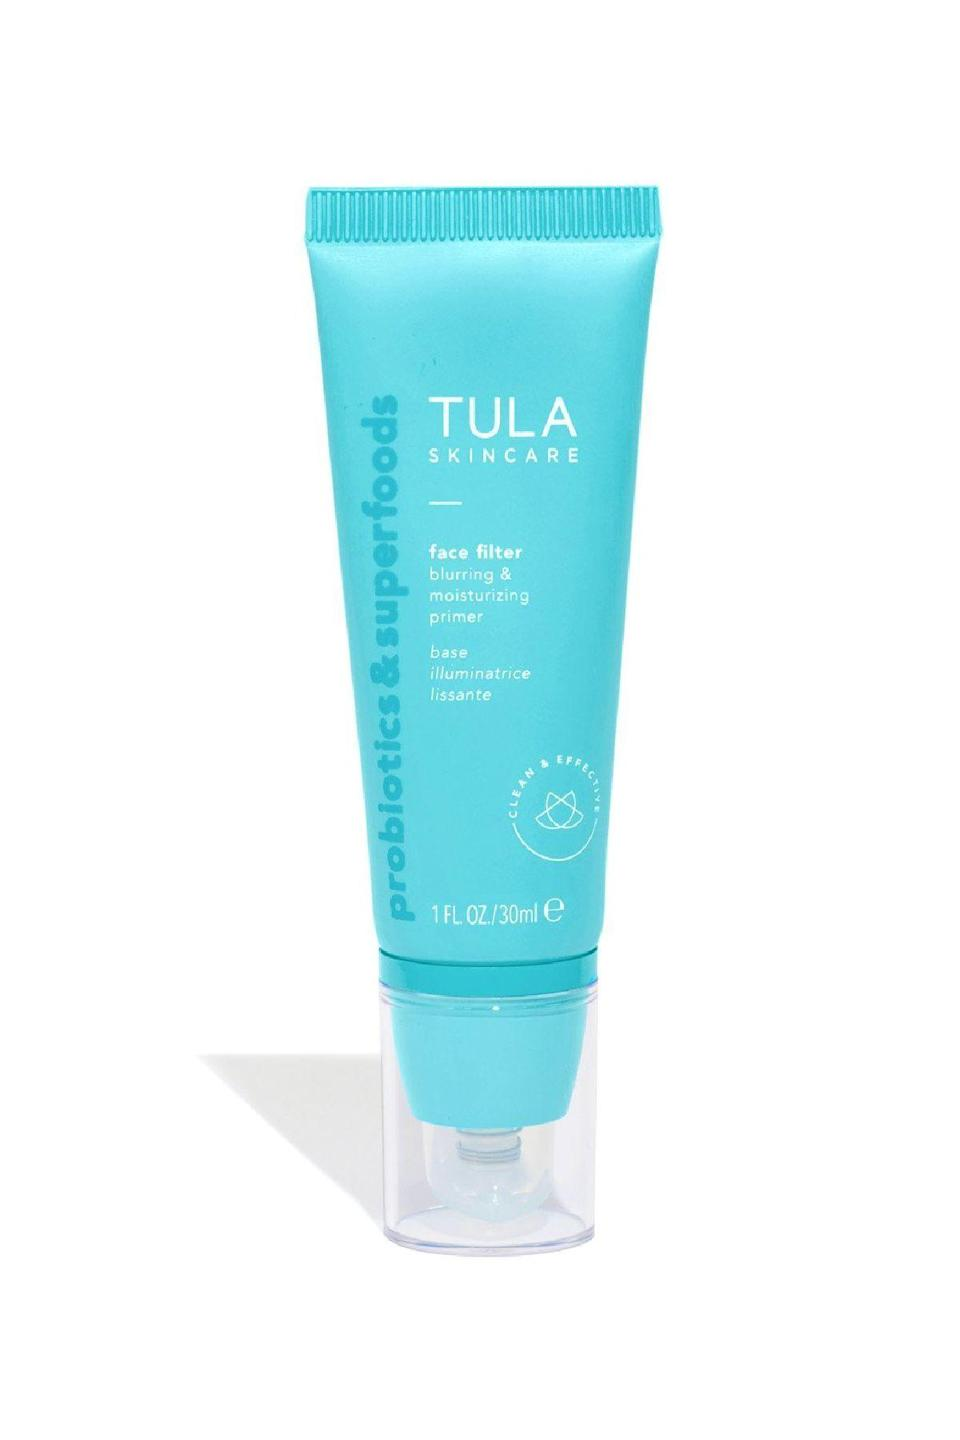 """<p><strong>Tula Skincare</strong></p><p>nordstrom.com</p><p><strong>$48.00</strong></p><p><a href=""""https://go.redirectingat.com?id=74968X1596630&url=https%3A%2F%2Fwww.nordstrom.com%2Fs%2Ftula-skincare-breakout-star-oil-free-acne-moisturizer%2F5544927&sref=https%3A%2F%2Fwww.marieclaire.com%2Fbeauty%2Fg34399769%2Fbest-oil-free-moisturizers%2F"""" rel=""""nofollow noopener"""" target=""""_blank"""" data-ylk=""""slk:SHOP IT"""" class=""""link rapid-noclick-resp"""">SHOP IT</a></p><p>When your skin is really broken out, layering on a thick cream is about as appealing as getting tarred and feathered. Here, two percent salicylic acid and brightening azaelic acid are suspended in an sumptuous featherlight cream, meaning your entire face can get both hydration and treatment at once.</p><p><strong><br></strong></p>"""